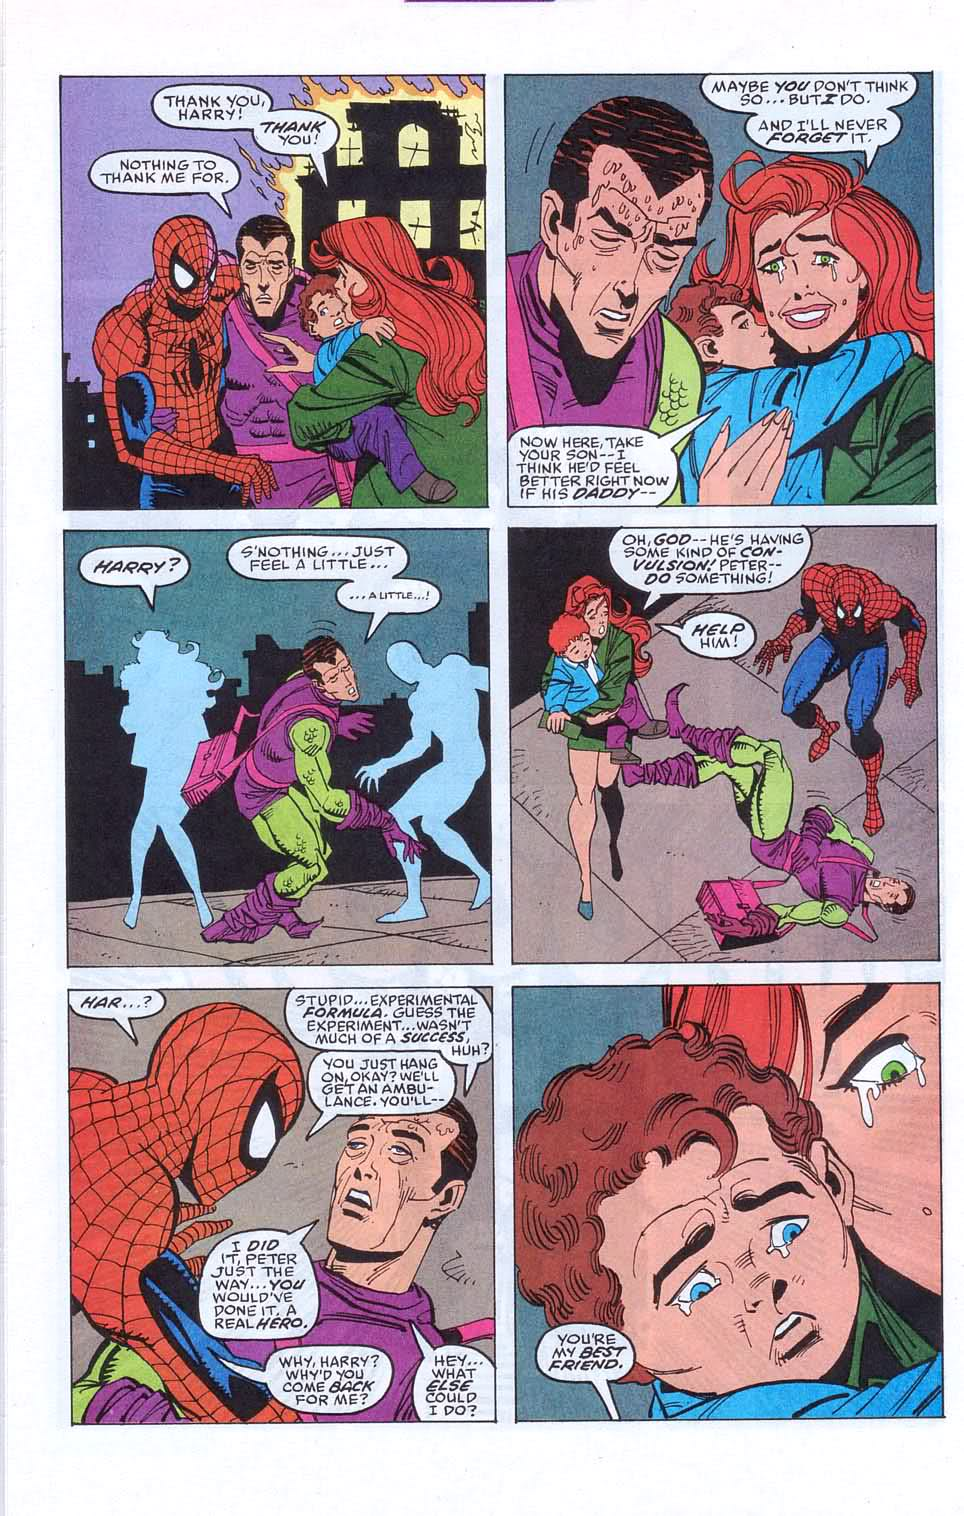 Sal Buscema and J.M. DeMatteis BRINGING THE EMOTION.